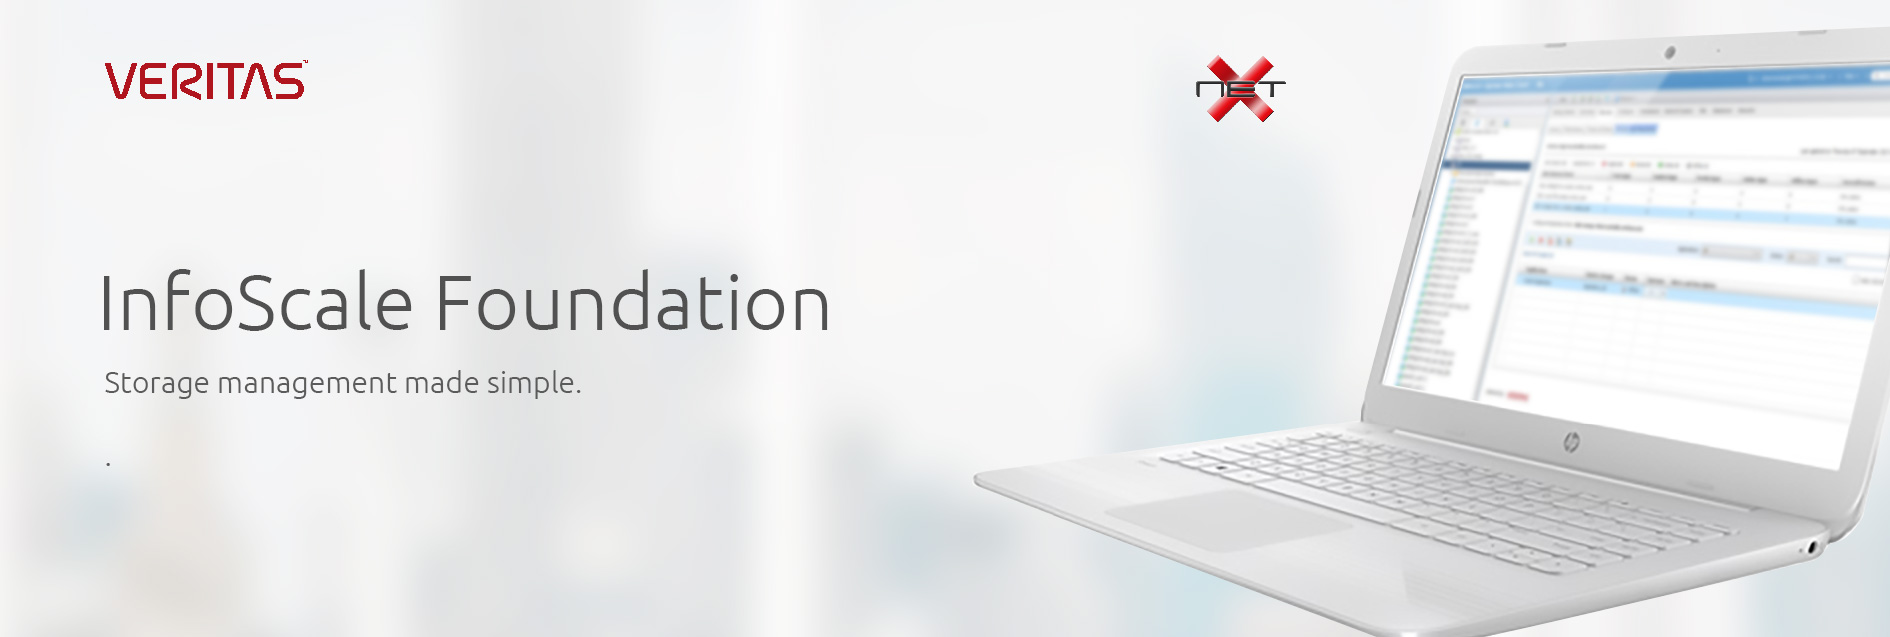 netx-veritas-infoscale-foundation services banner